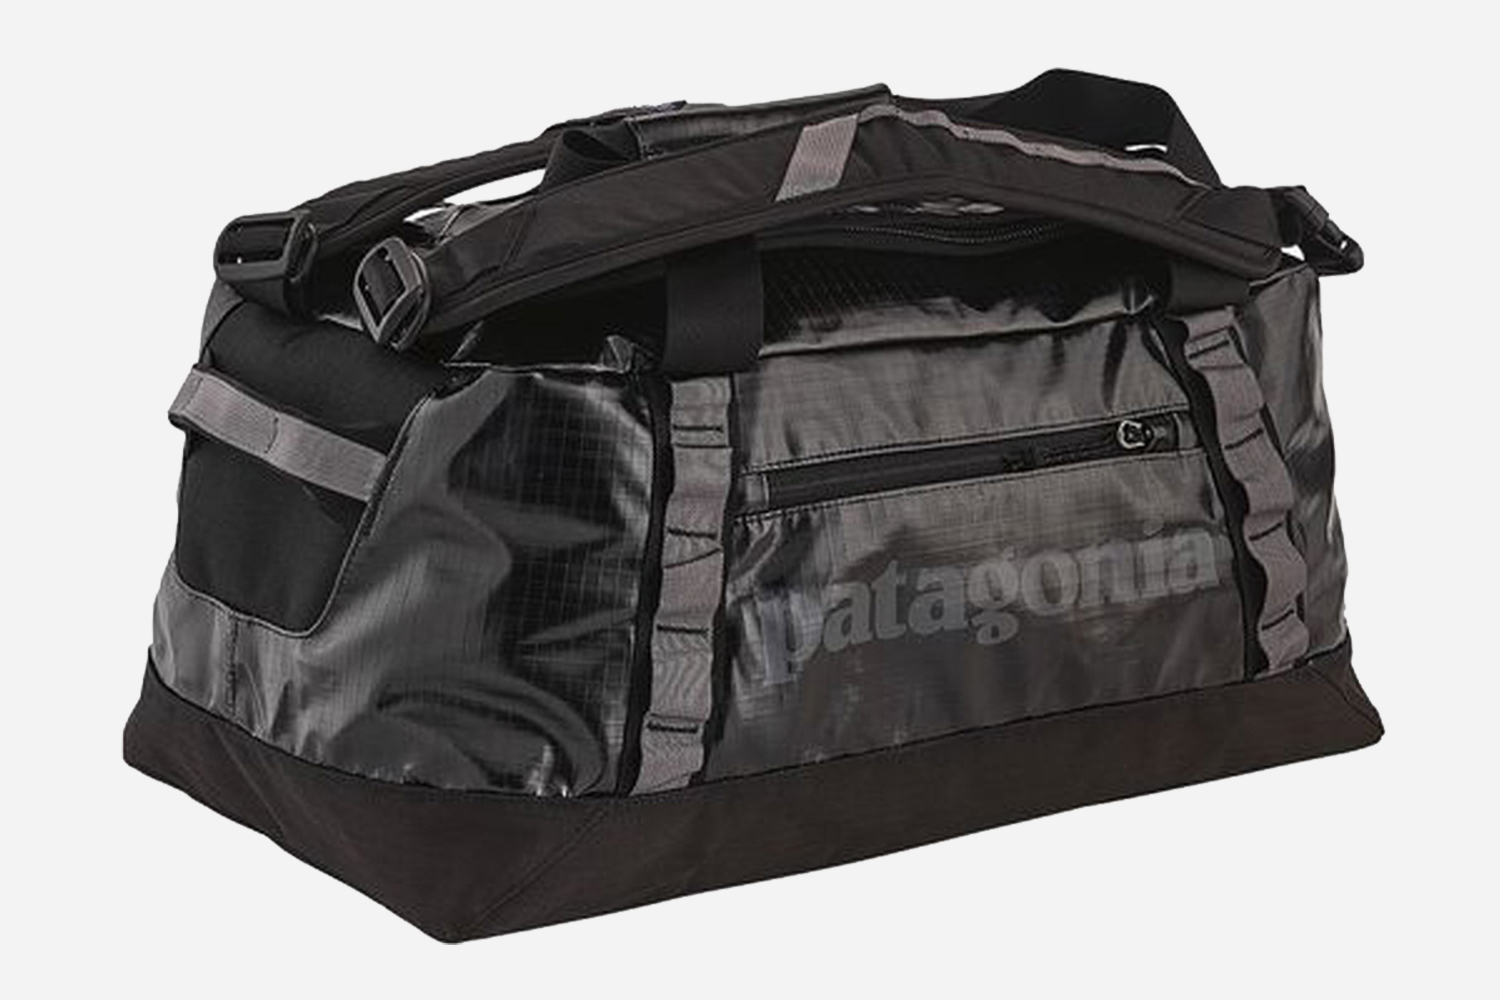 Sale on Patagonia Black Hole Duffels at REI